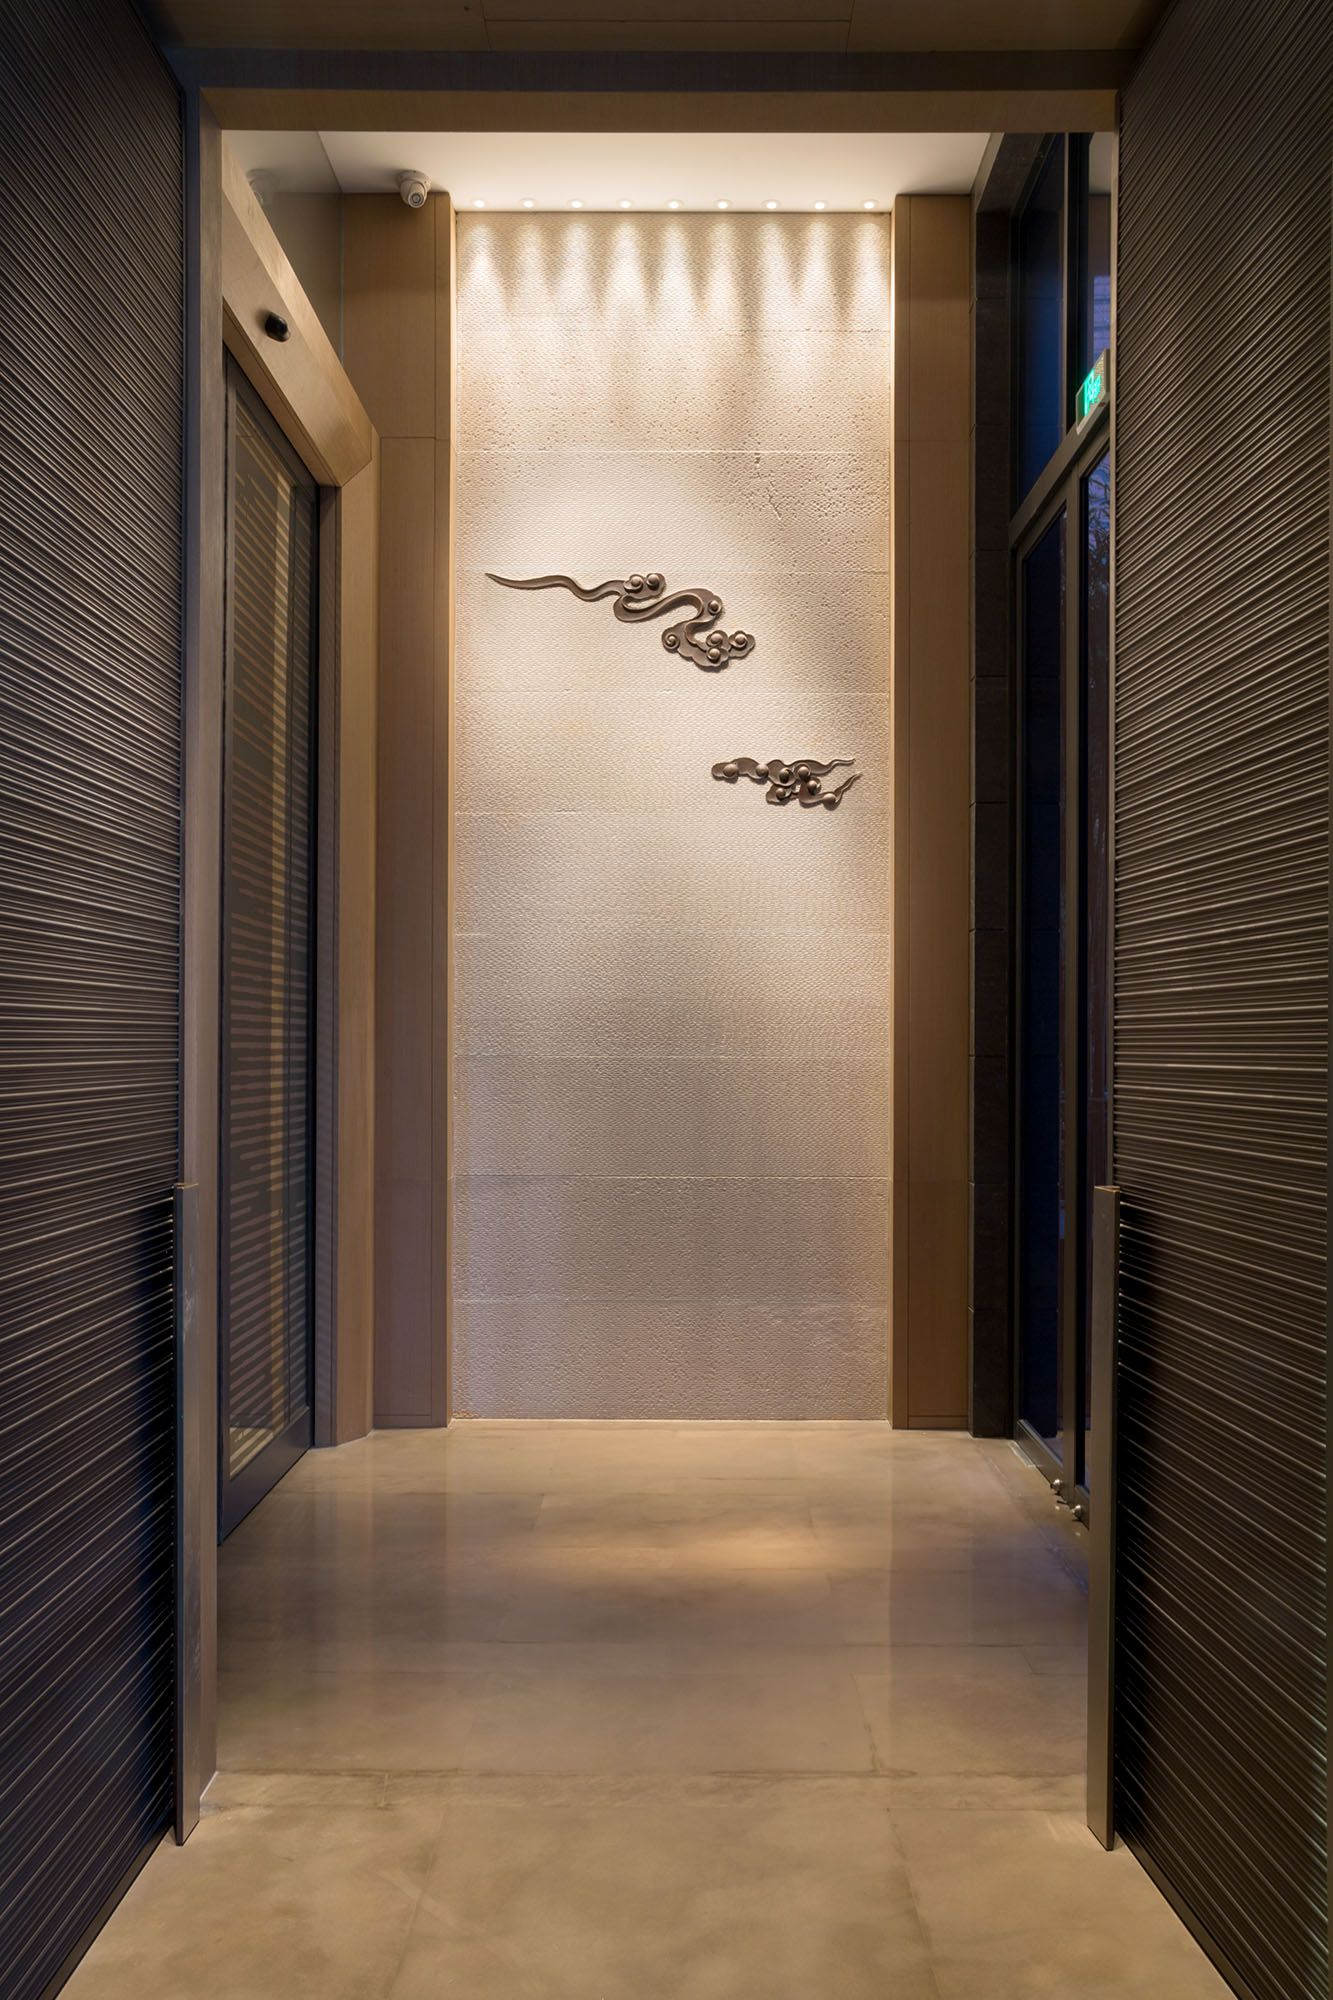 Image Result For Hotel Room Door Designs: The East Hotel In HangZhou ,design By Andy Zon .